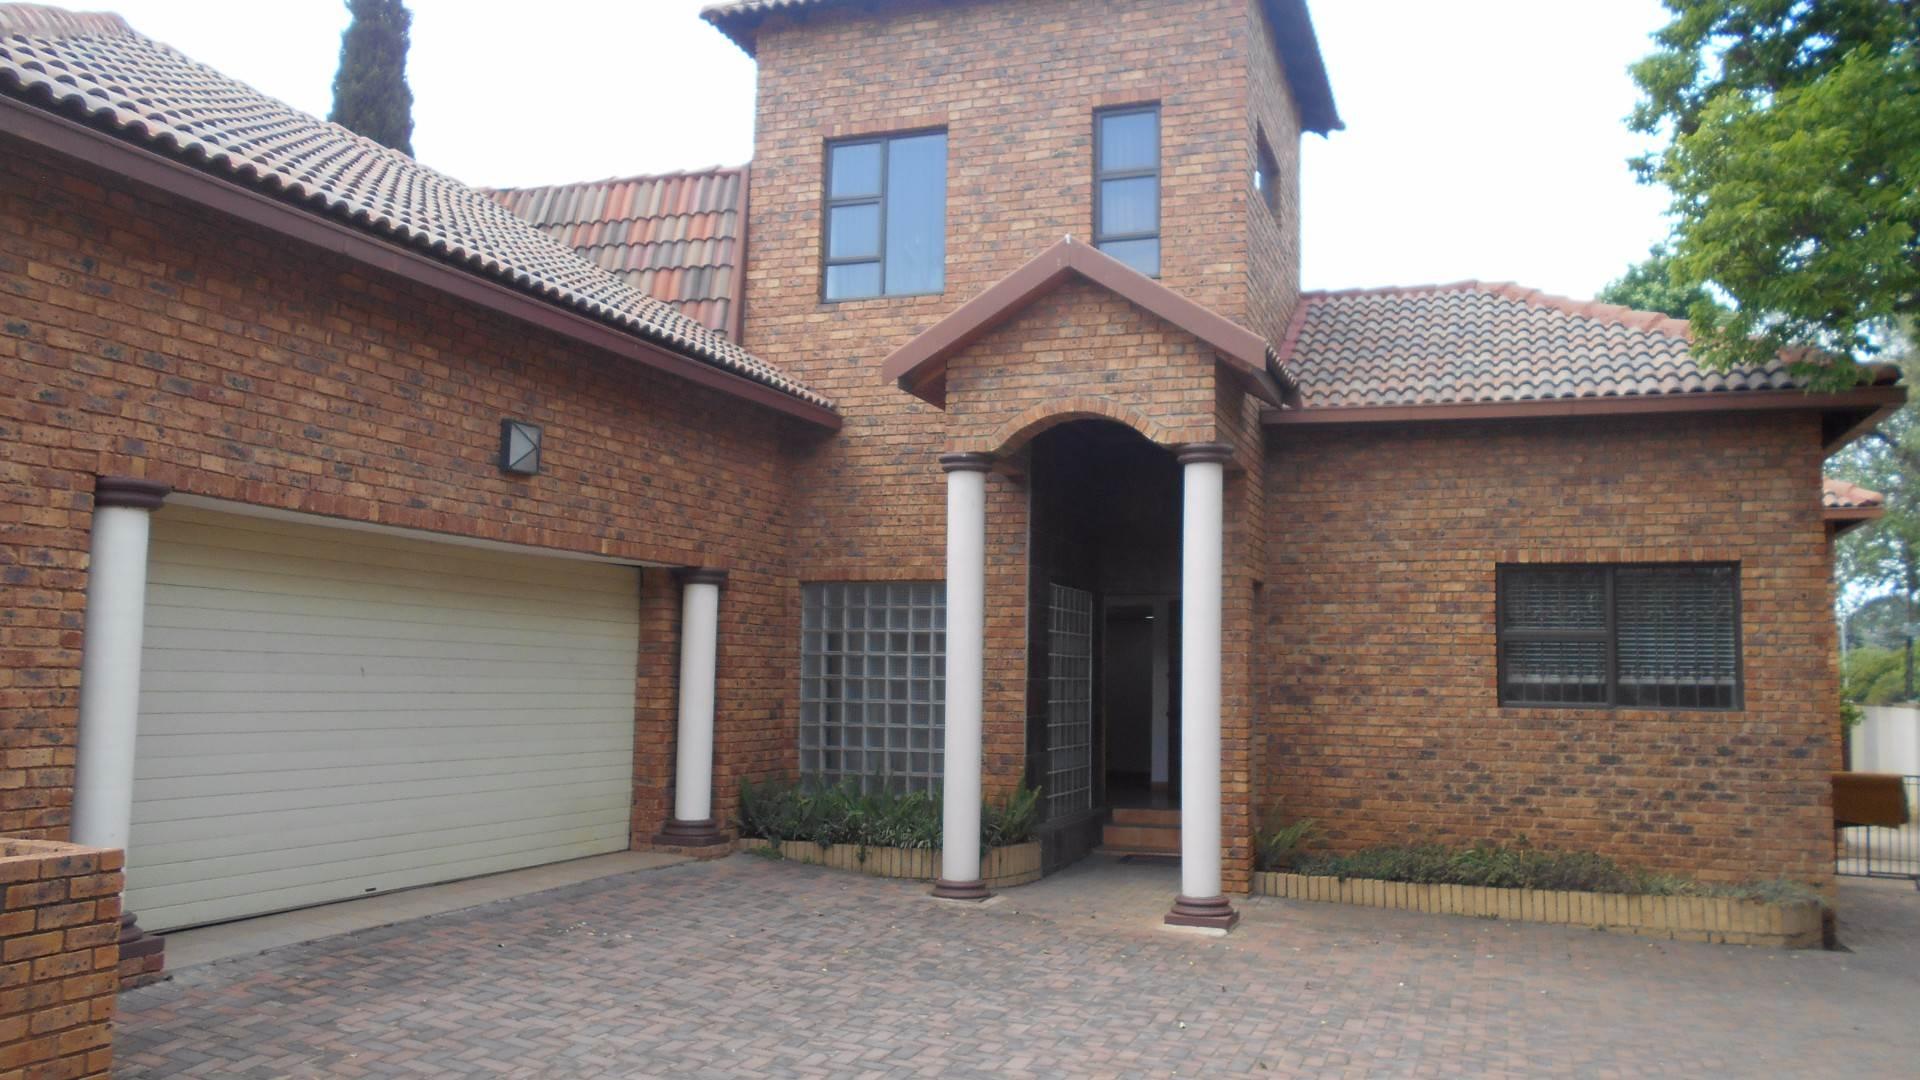 4 BedroomHouse For Sale In Bartletts